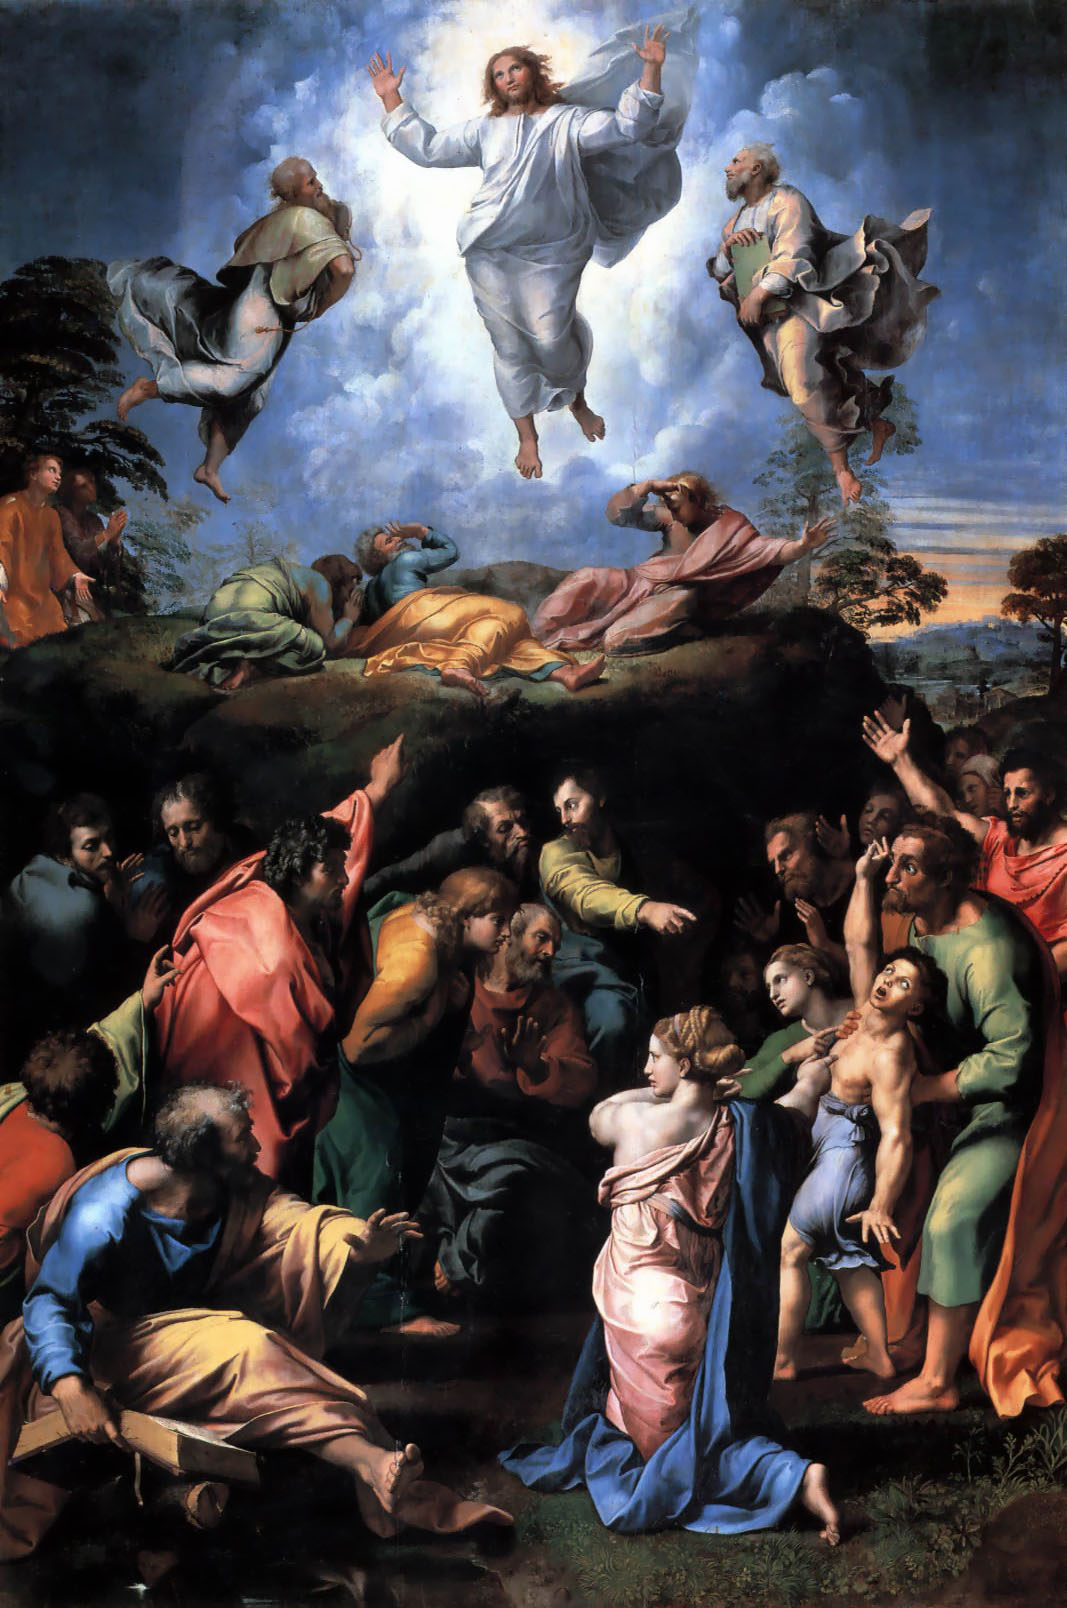 https://upload.wikimedia.org/wikipedia/commons/5/51/Transfiguration_Raphael.jpg